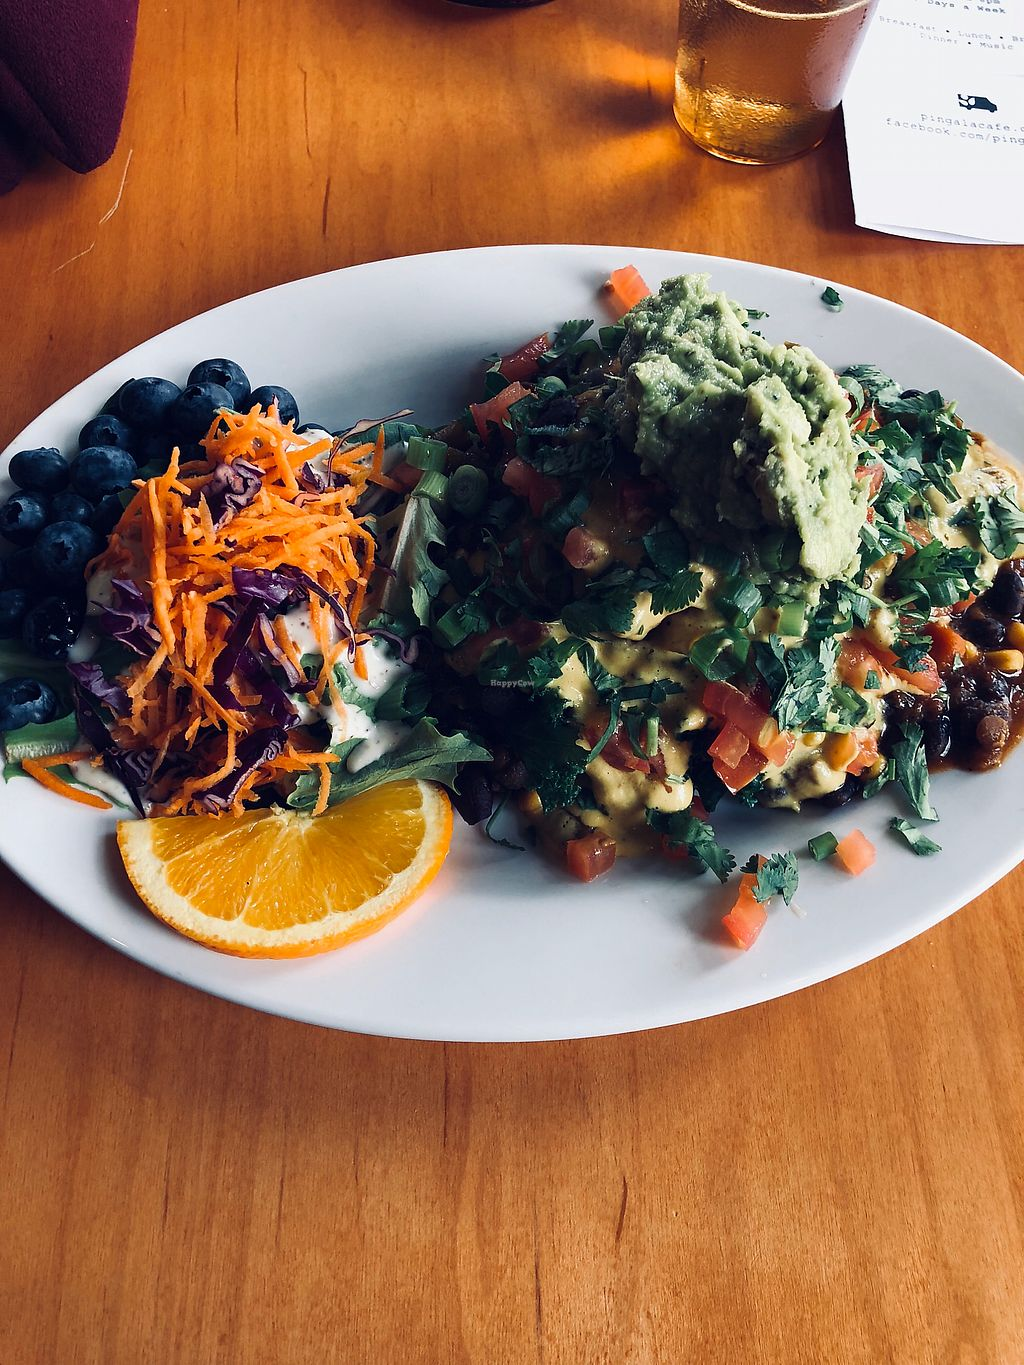 """Photo of Pingala Cafe  by <a href=""""/members/profile/Bgeezy"""">Bgeezy</a> <br/>Rancheros <br/> April 7, 2018  - <a href='/contact/abuse/image/45669/381899'>Report</a>"""